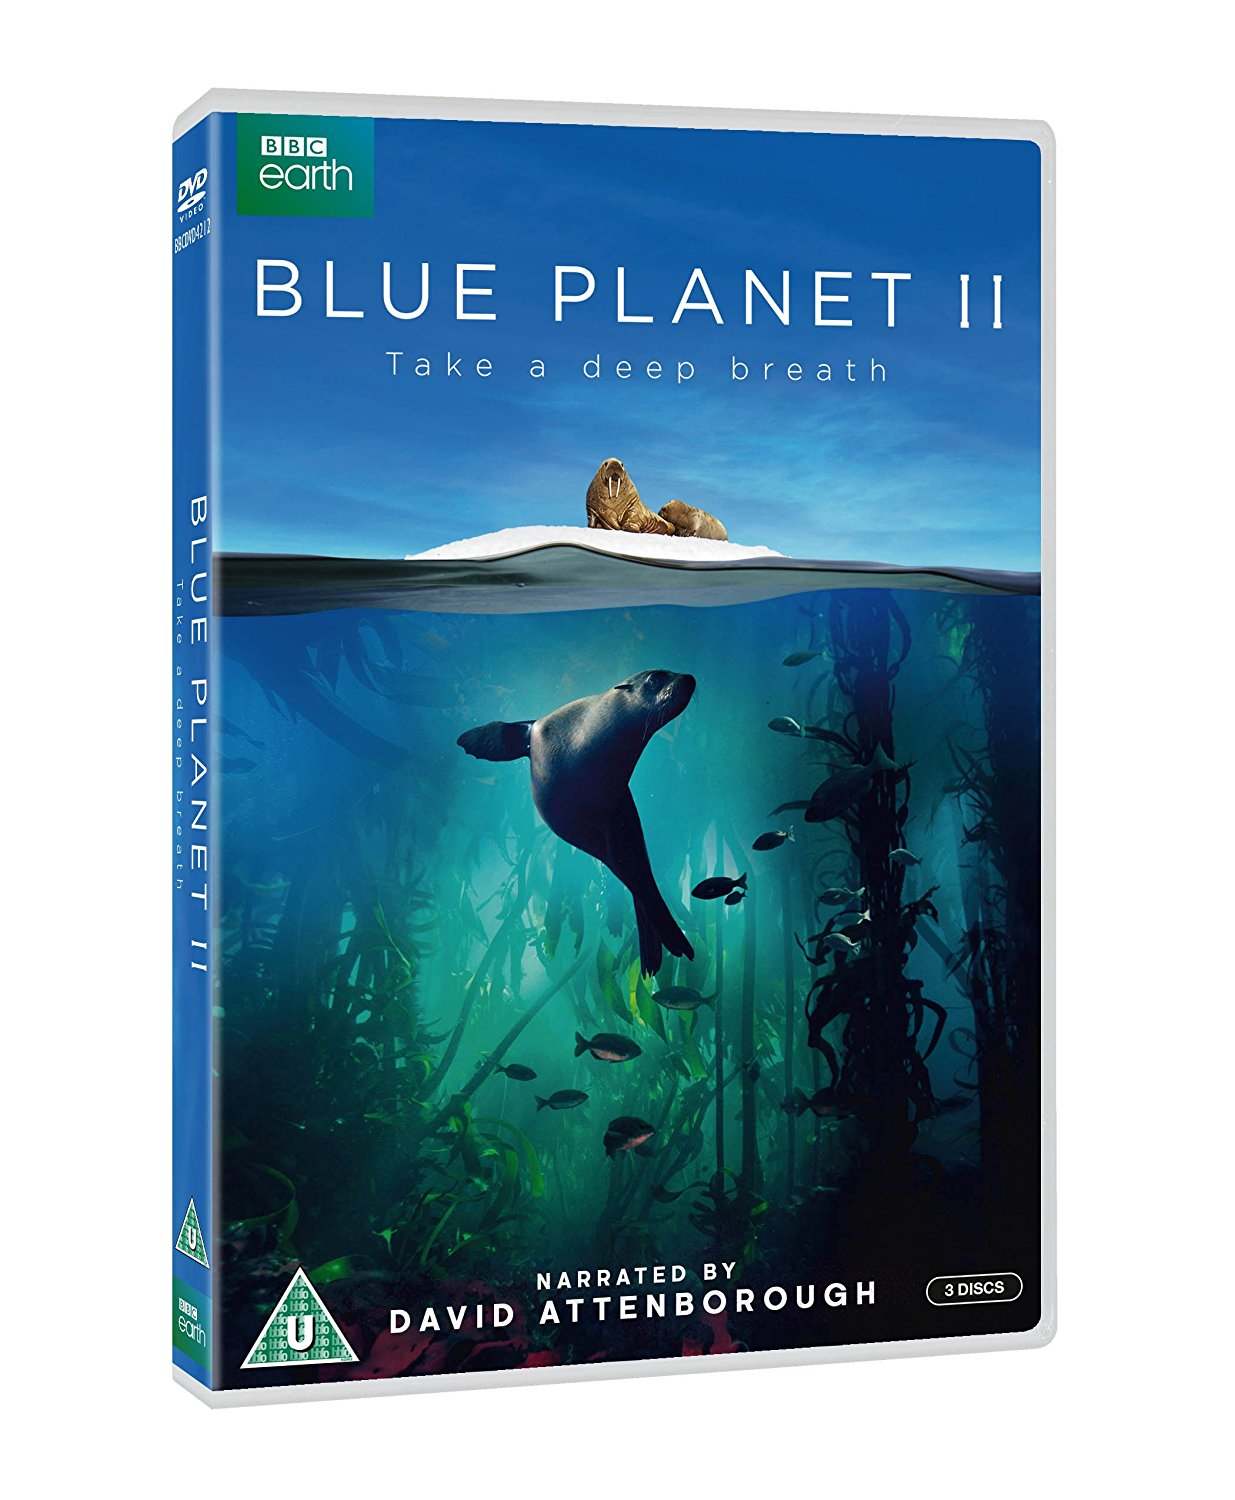 Blue Planet 2 - From £14.99